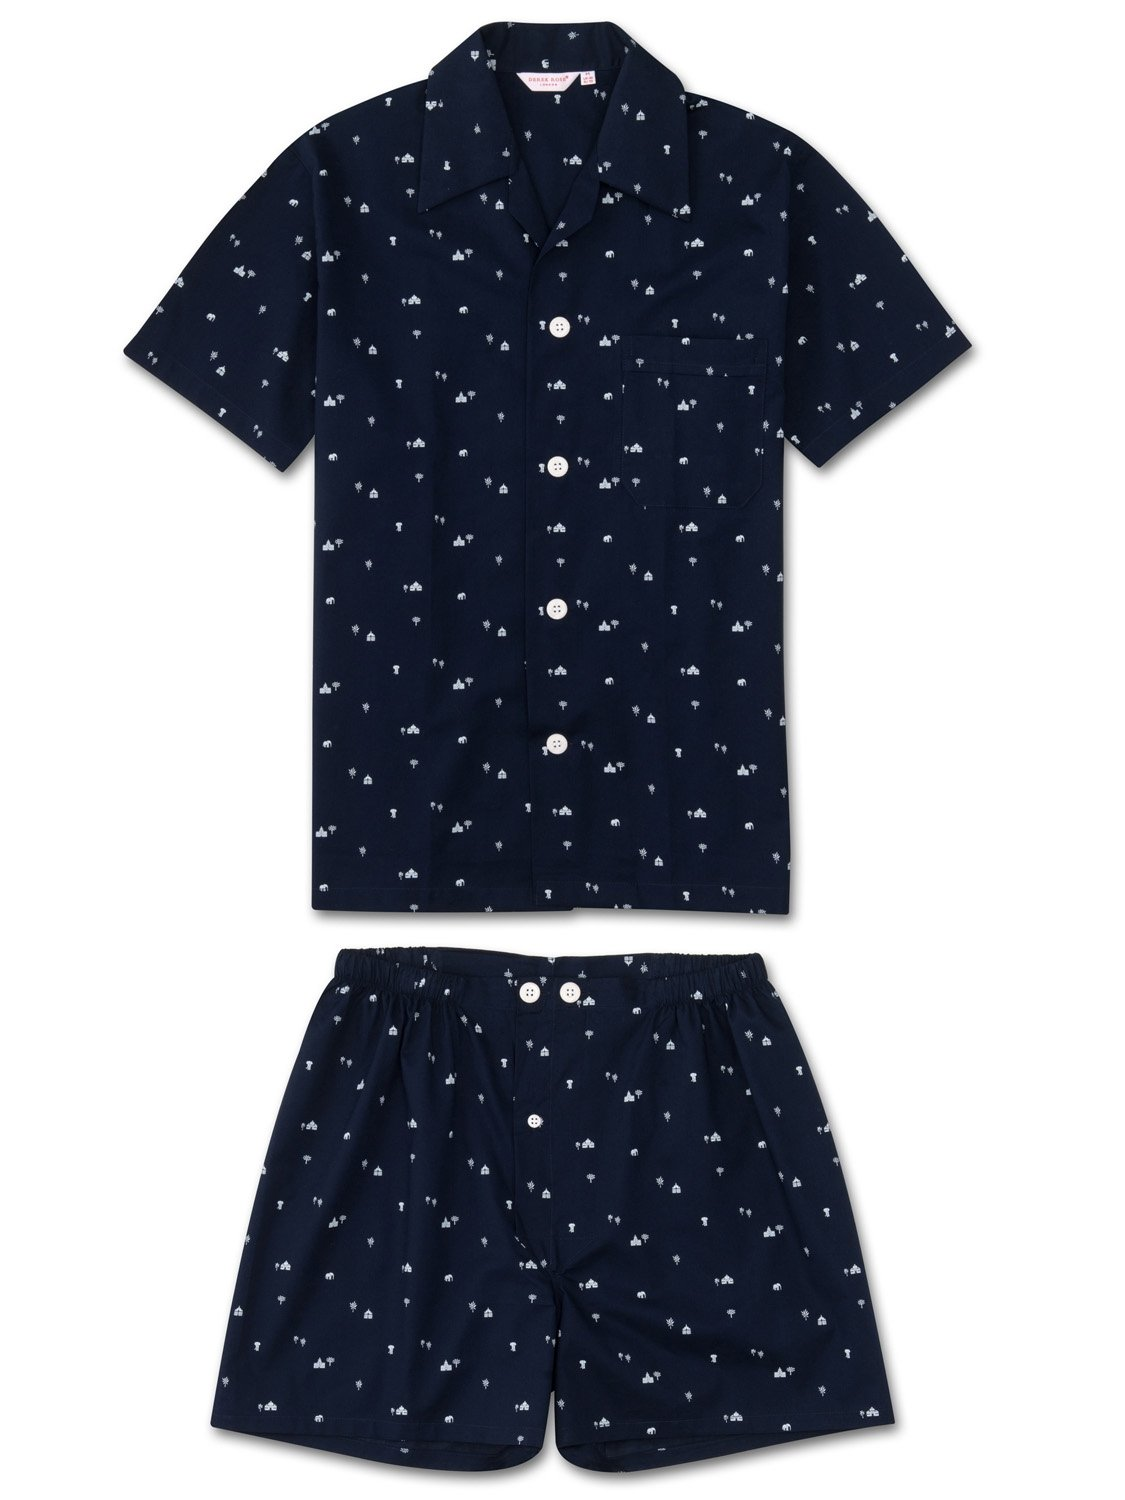 Men's Short Pyjamas Nelson 62 Cotton Batiste Navy